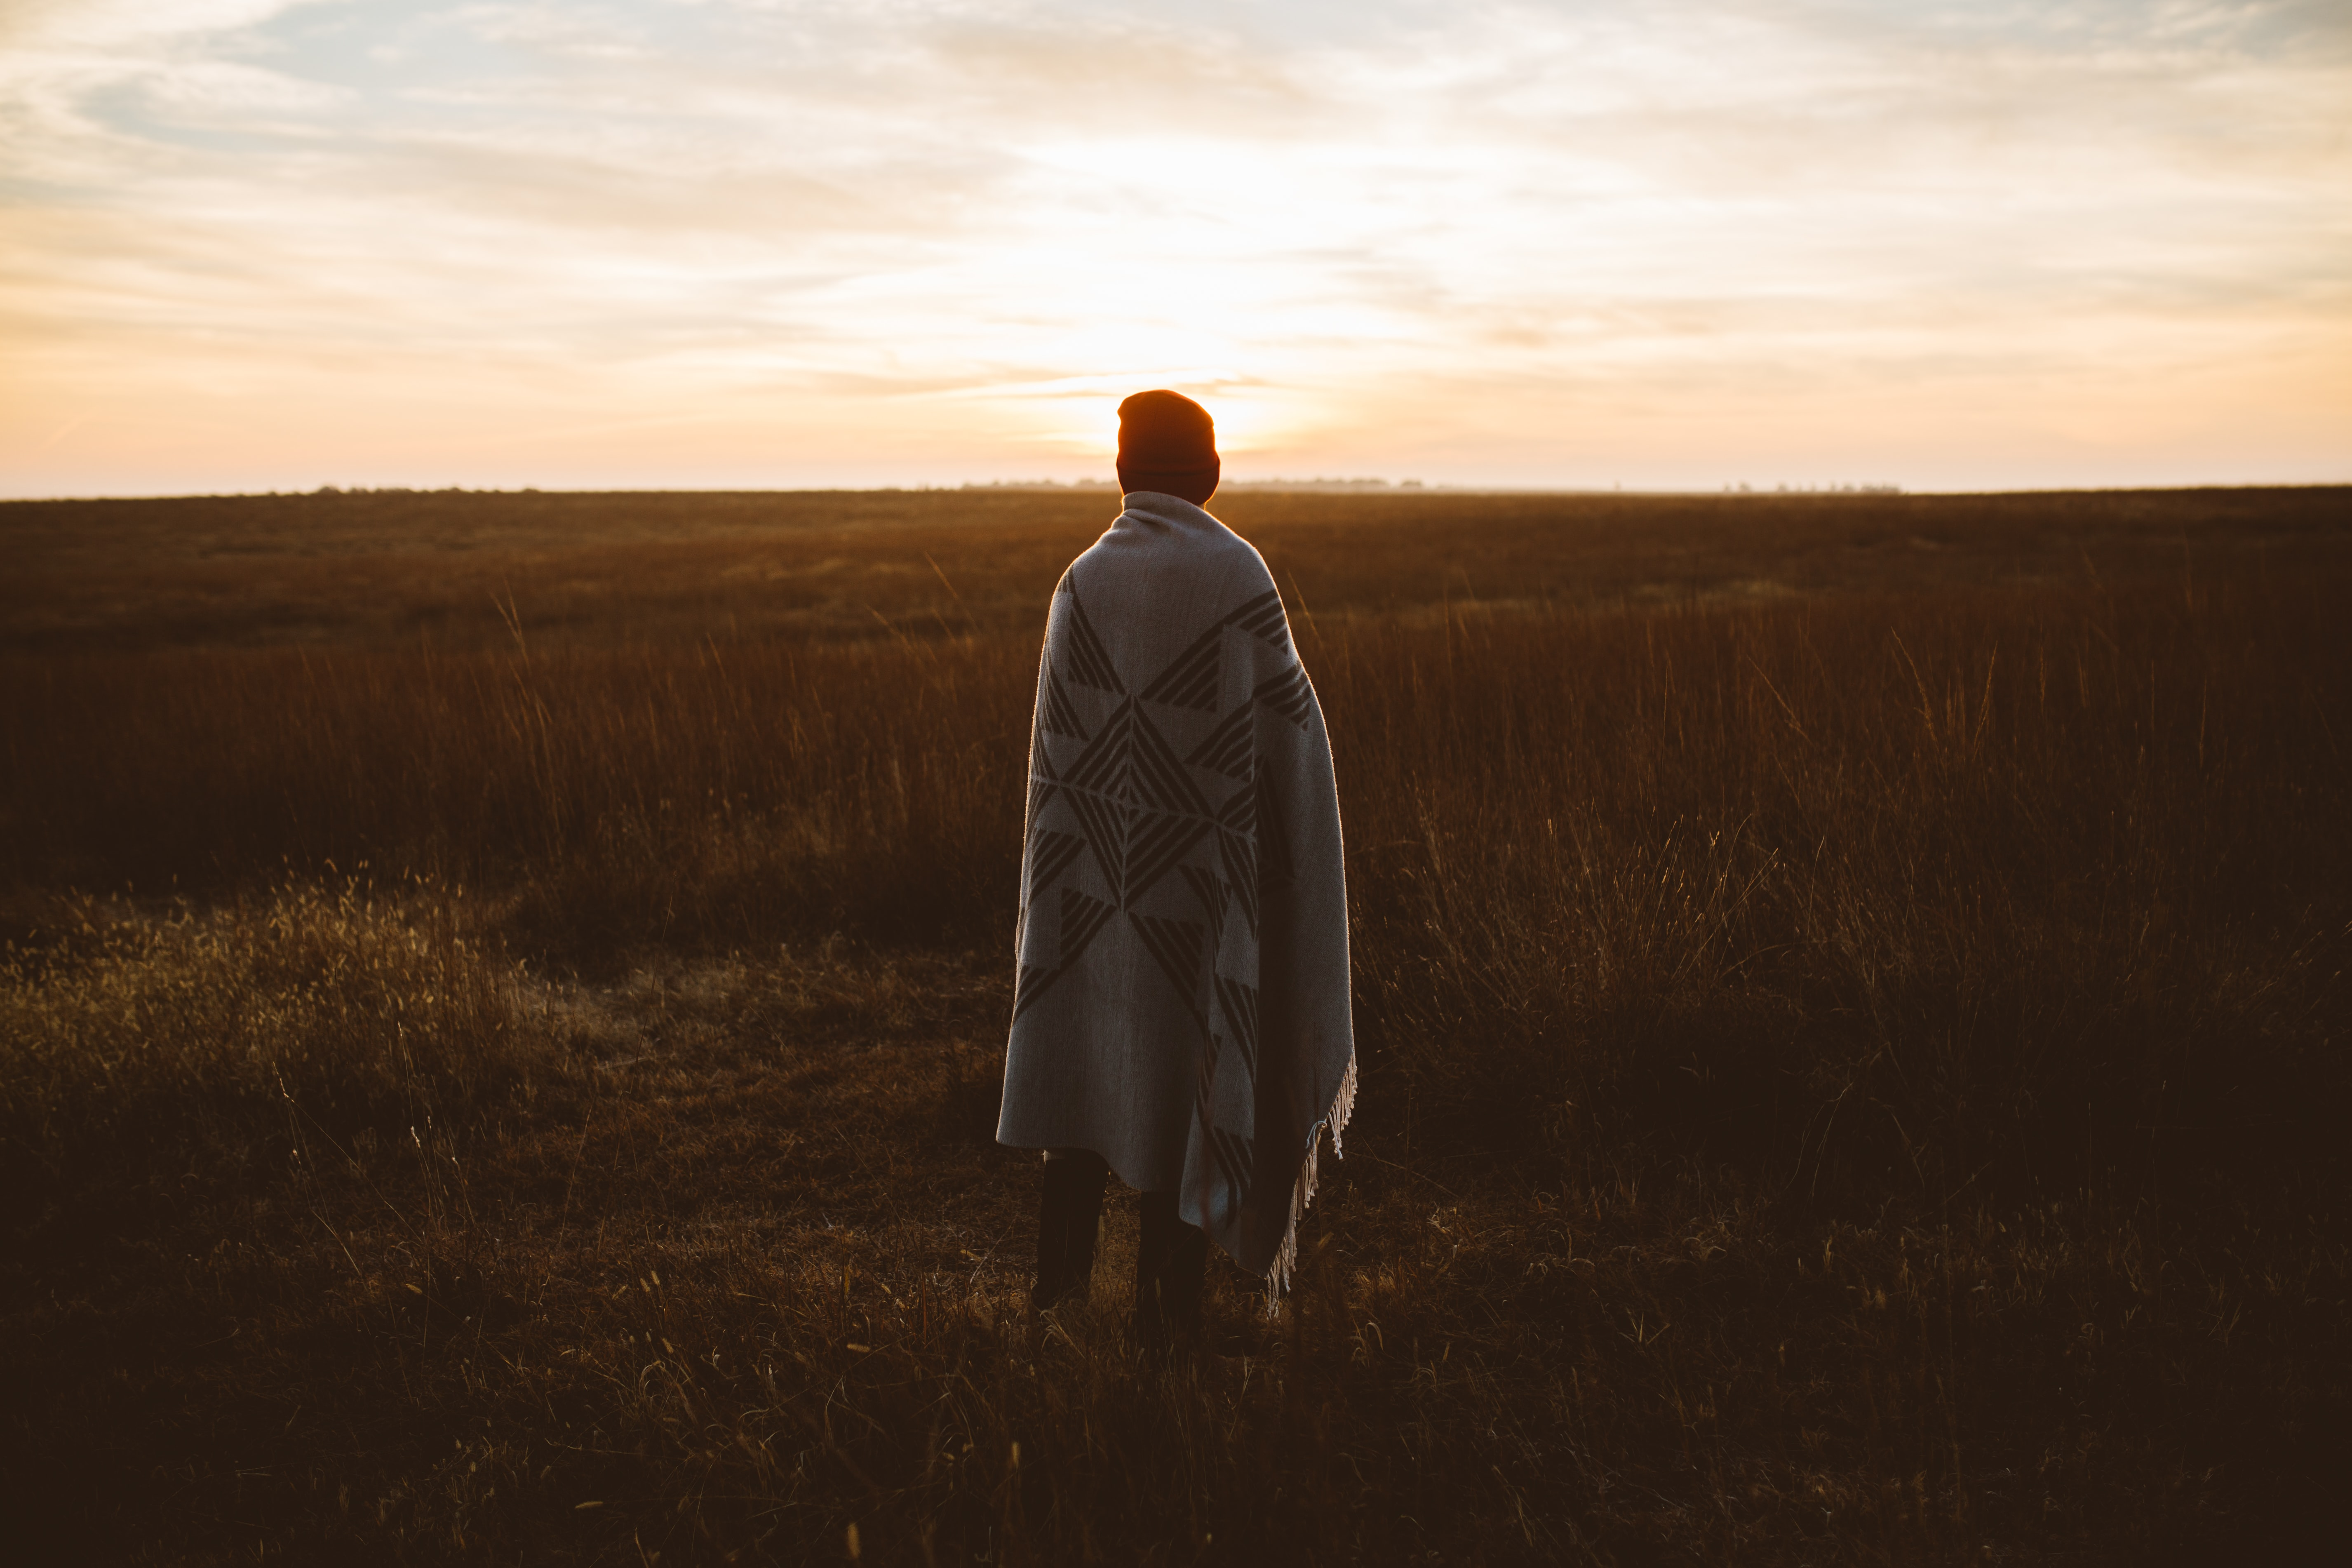 person cover in robe standing in front of grass field